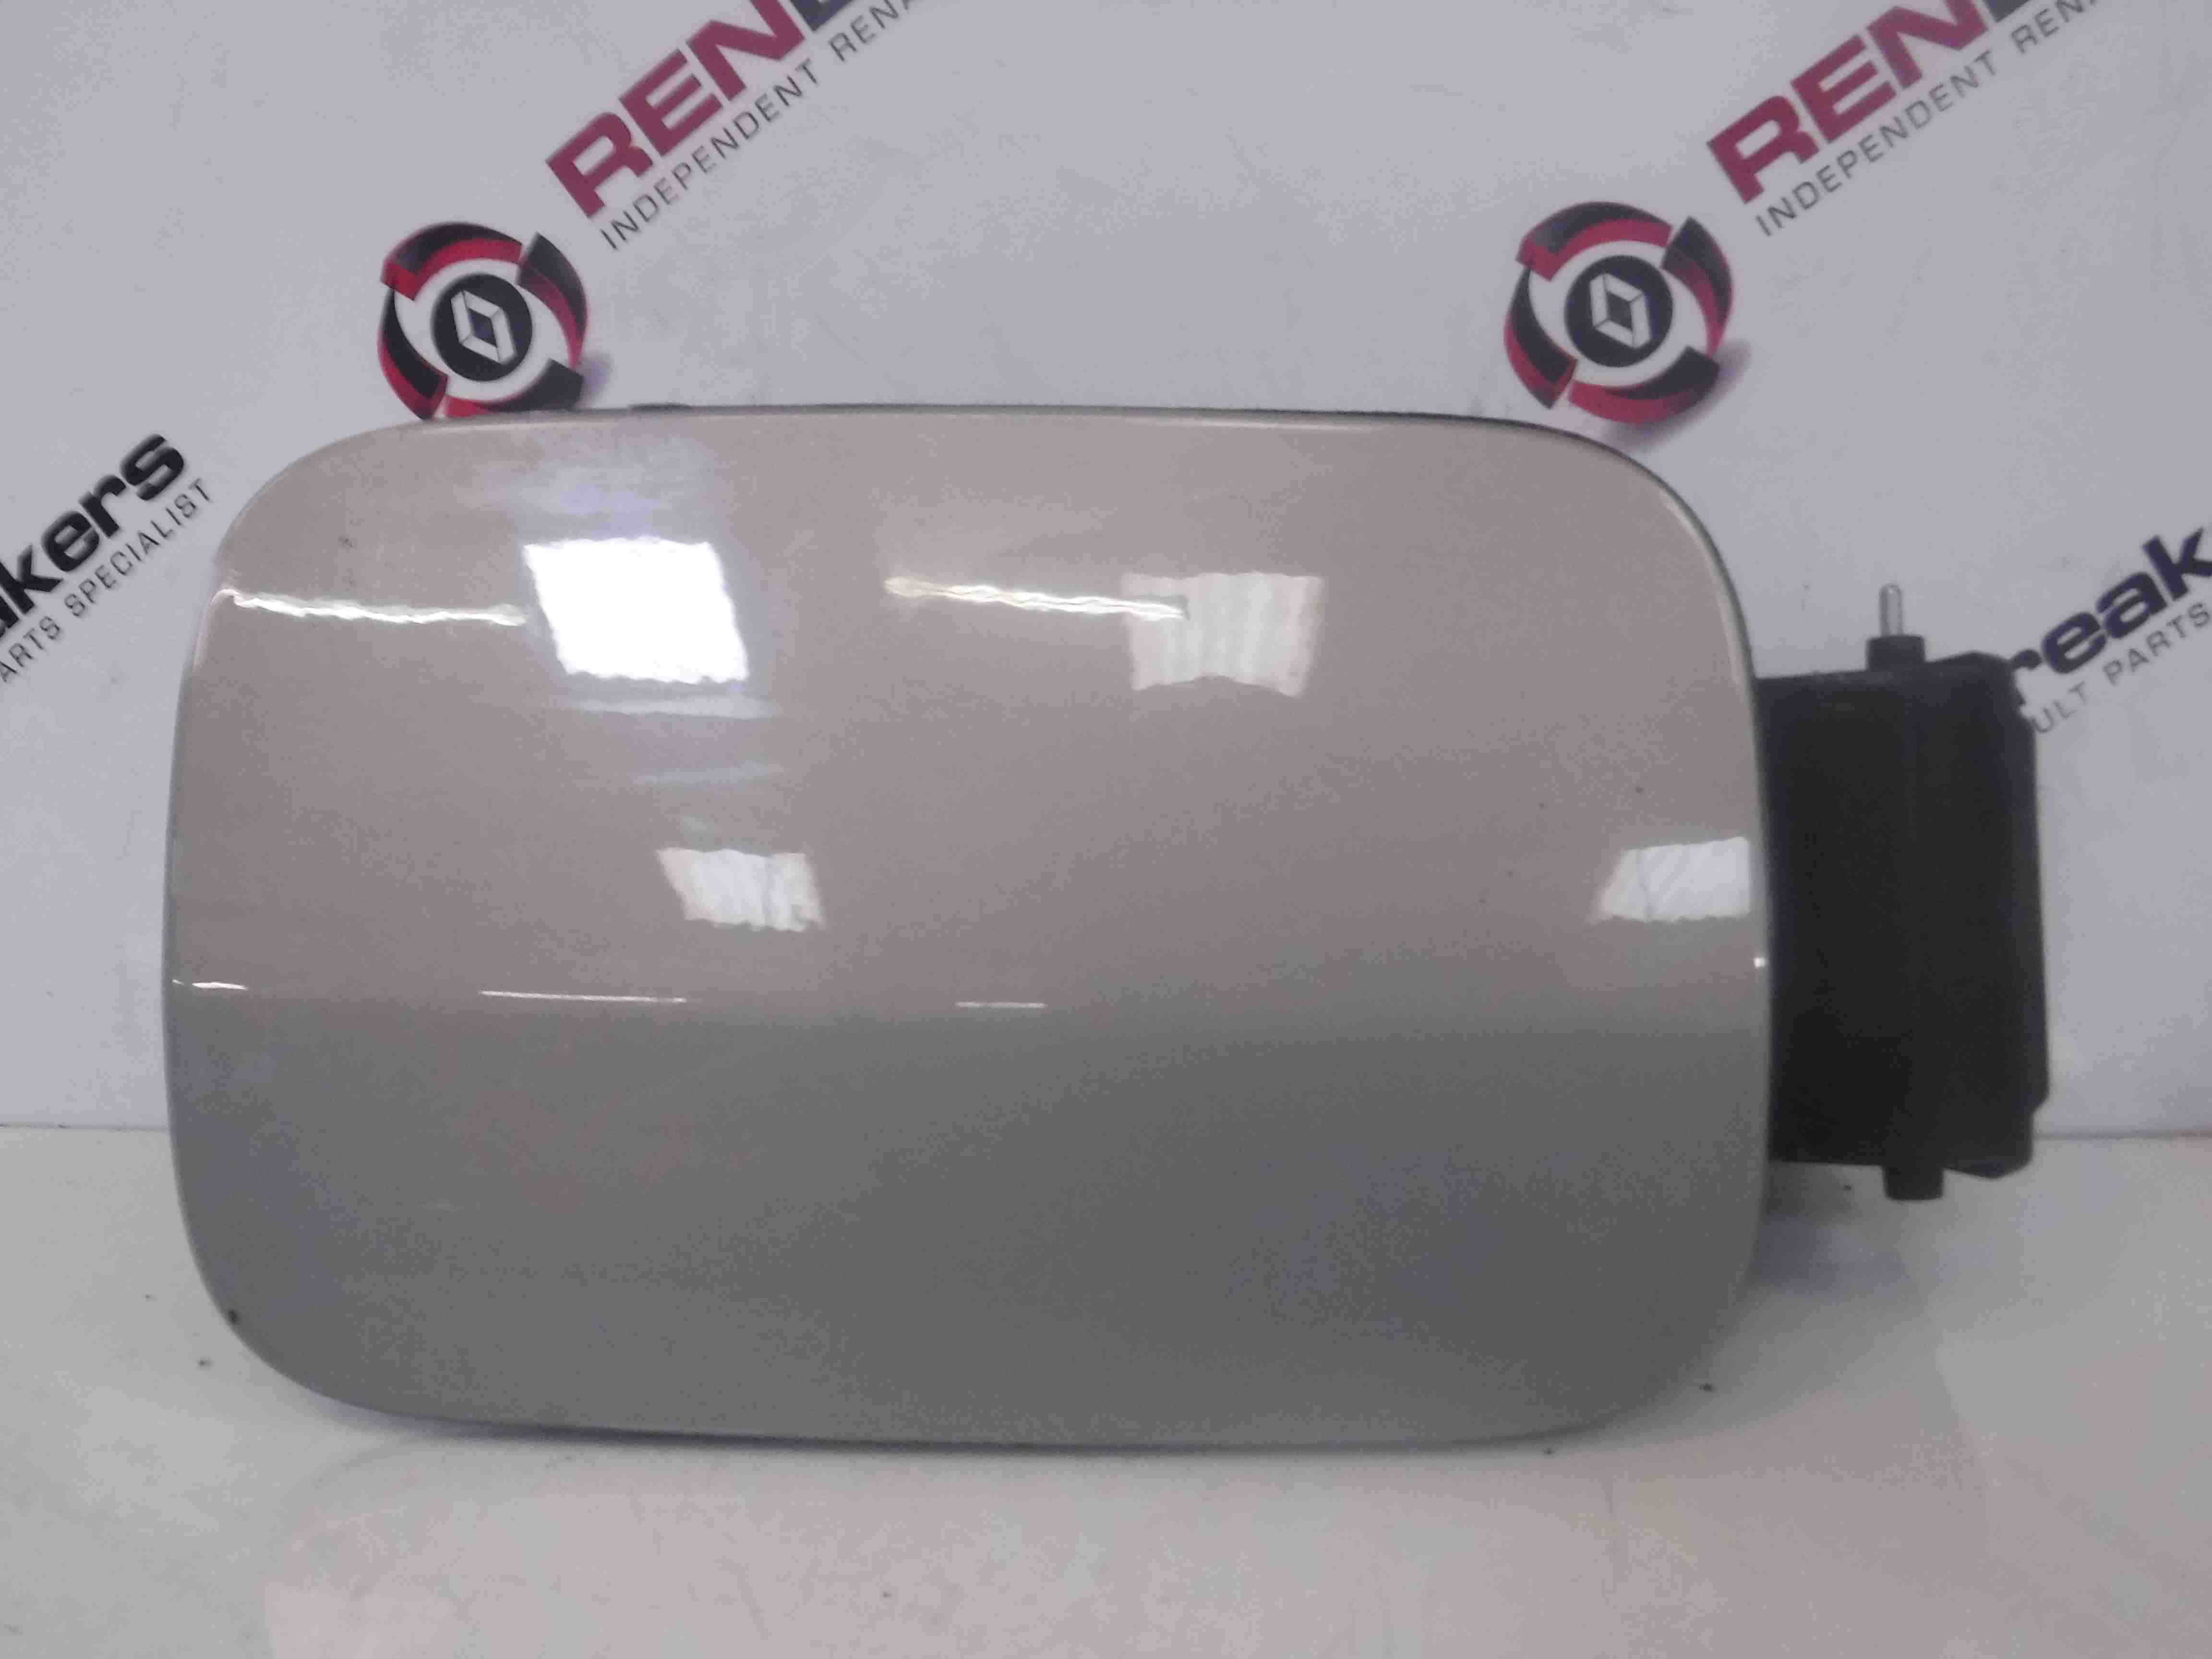 Renault Scenic 2003-2009 Fuel Flap Cover Silver + Hinges TEA19 8200228509